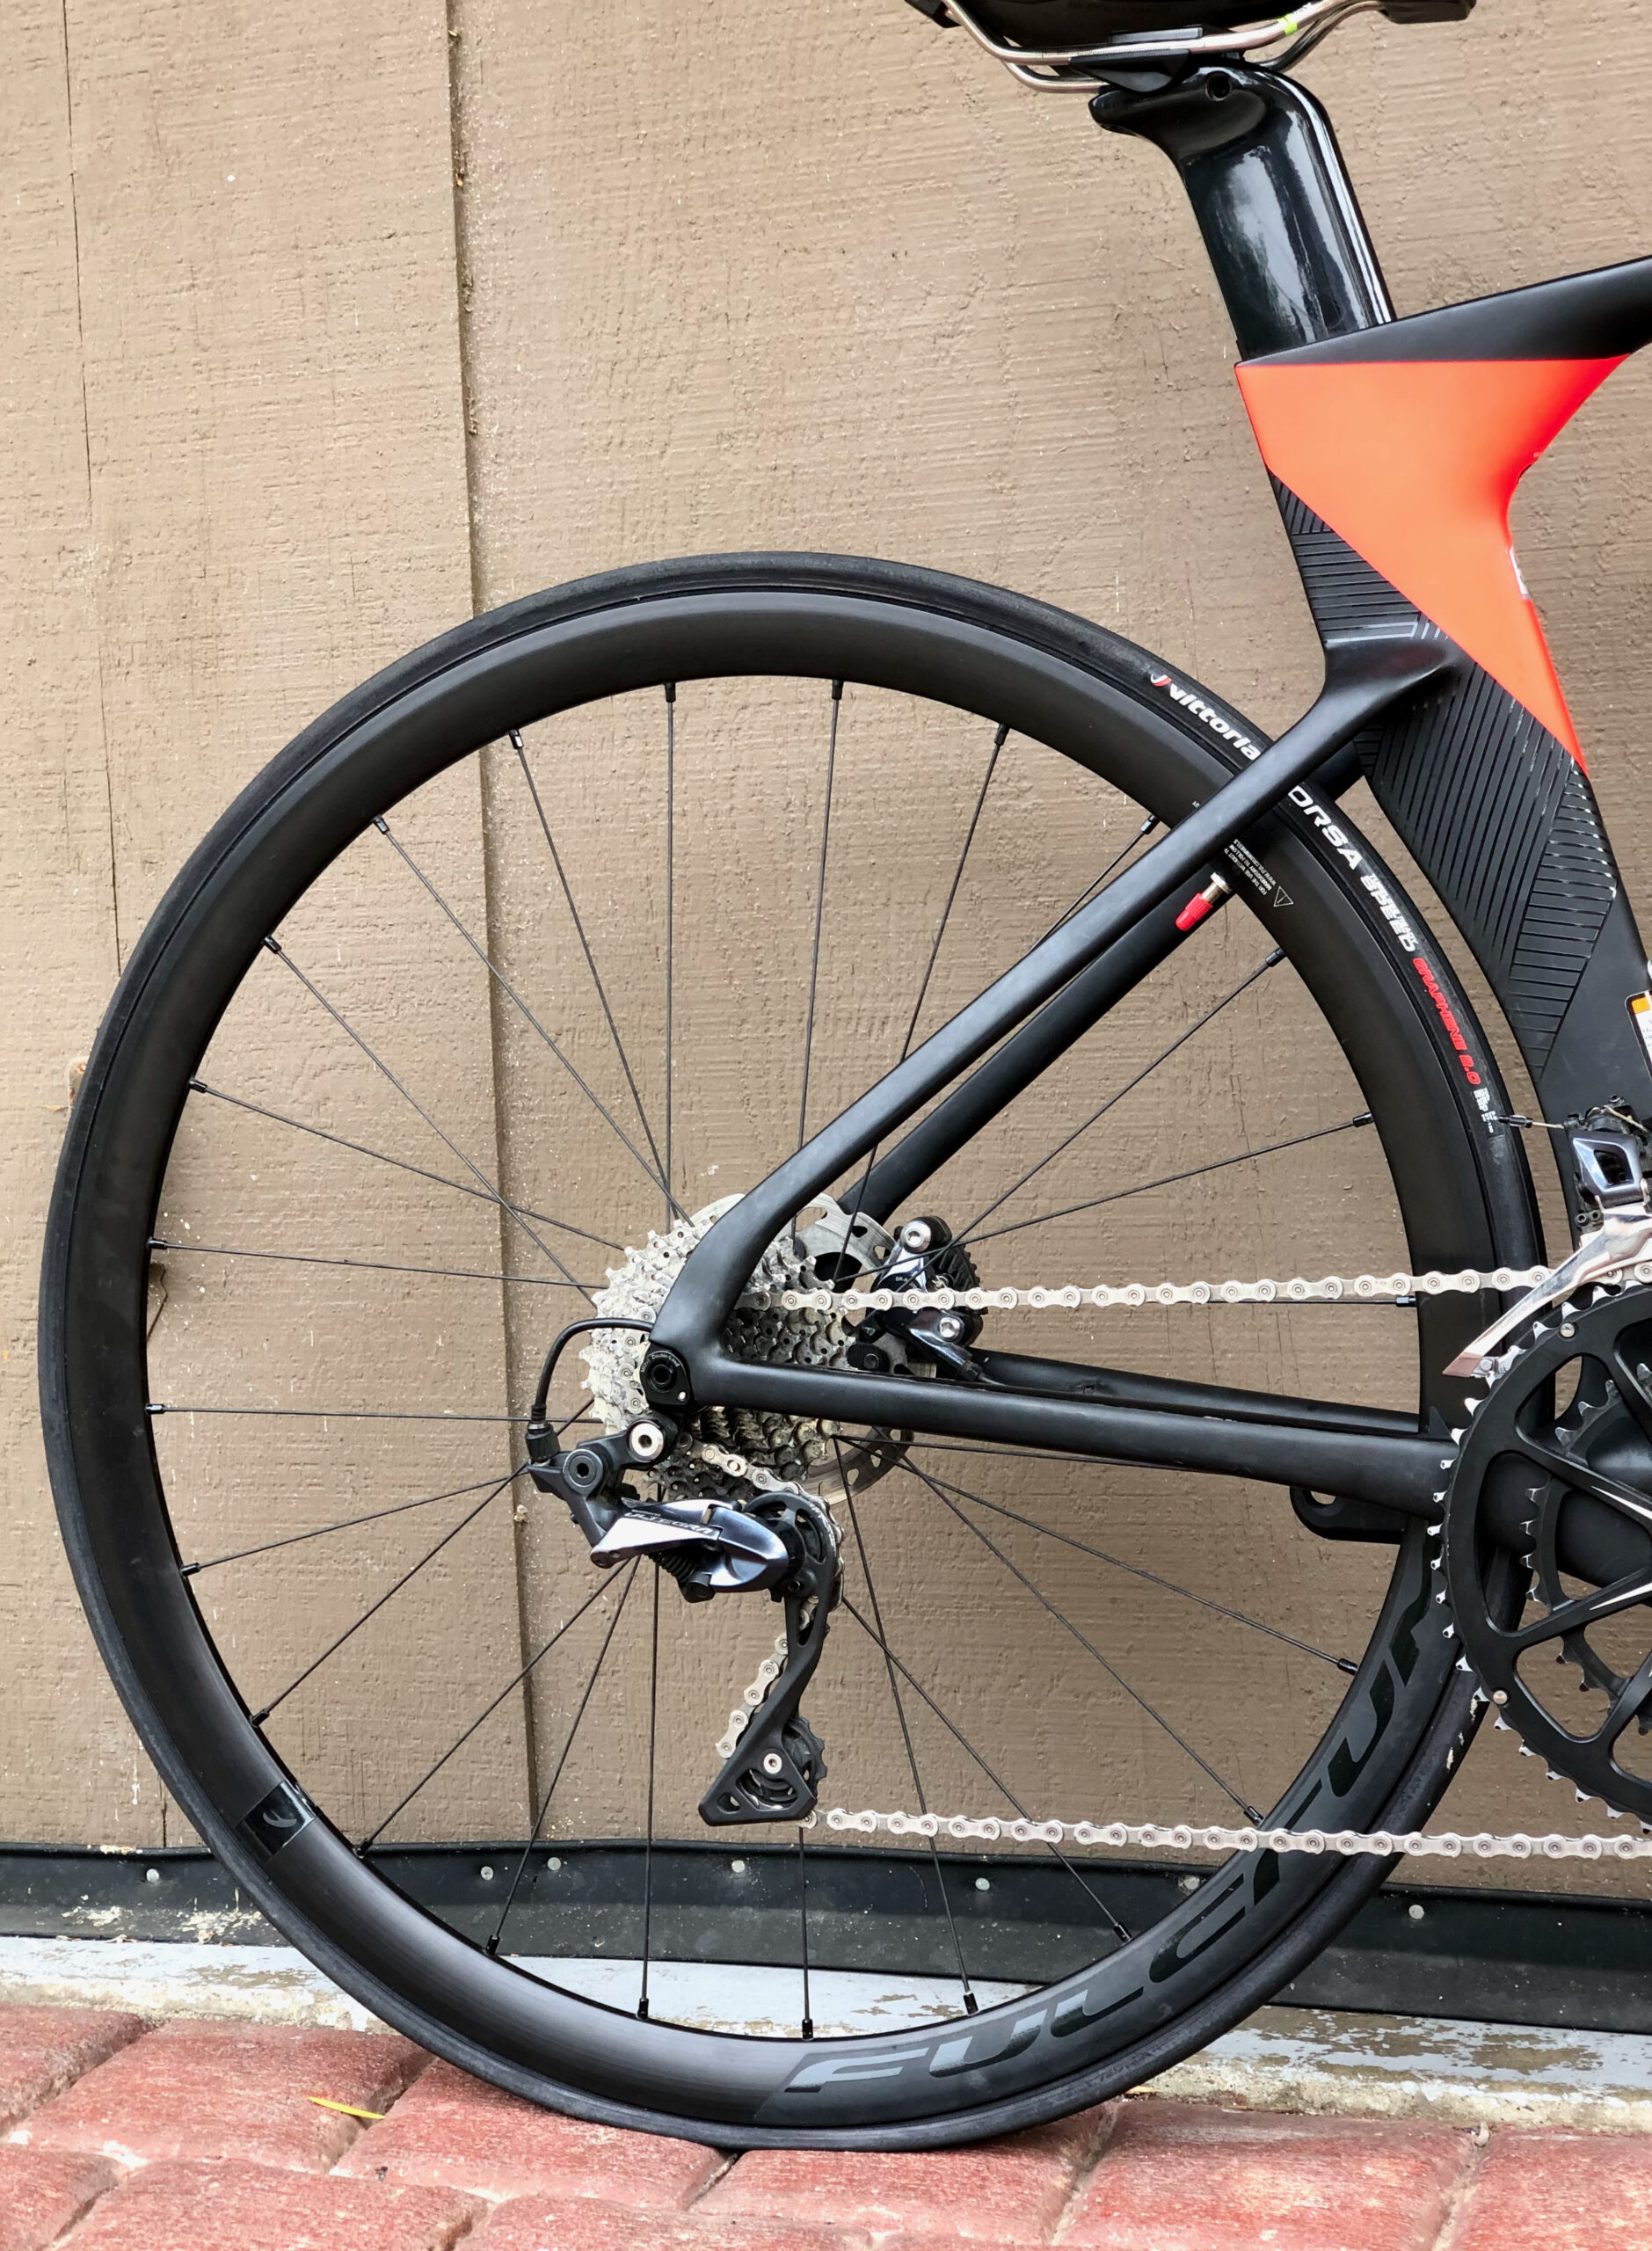 2019 Cannondale SystemSix Carbon Road Bike Ultegra 8000 54 cm Stages Power Meter